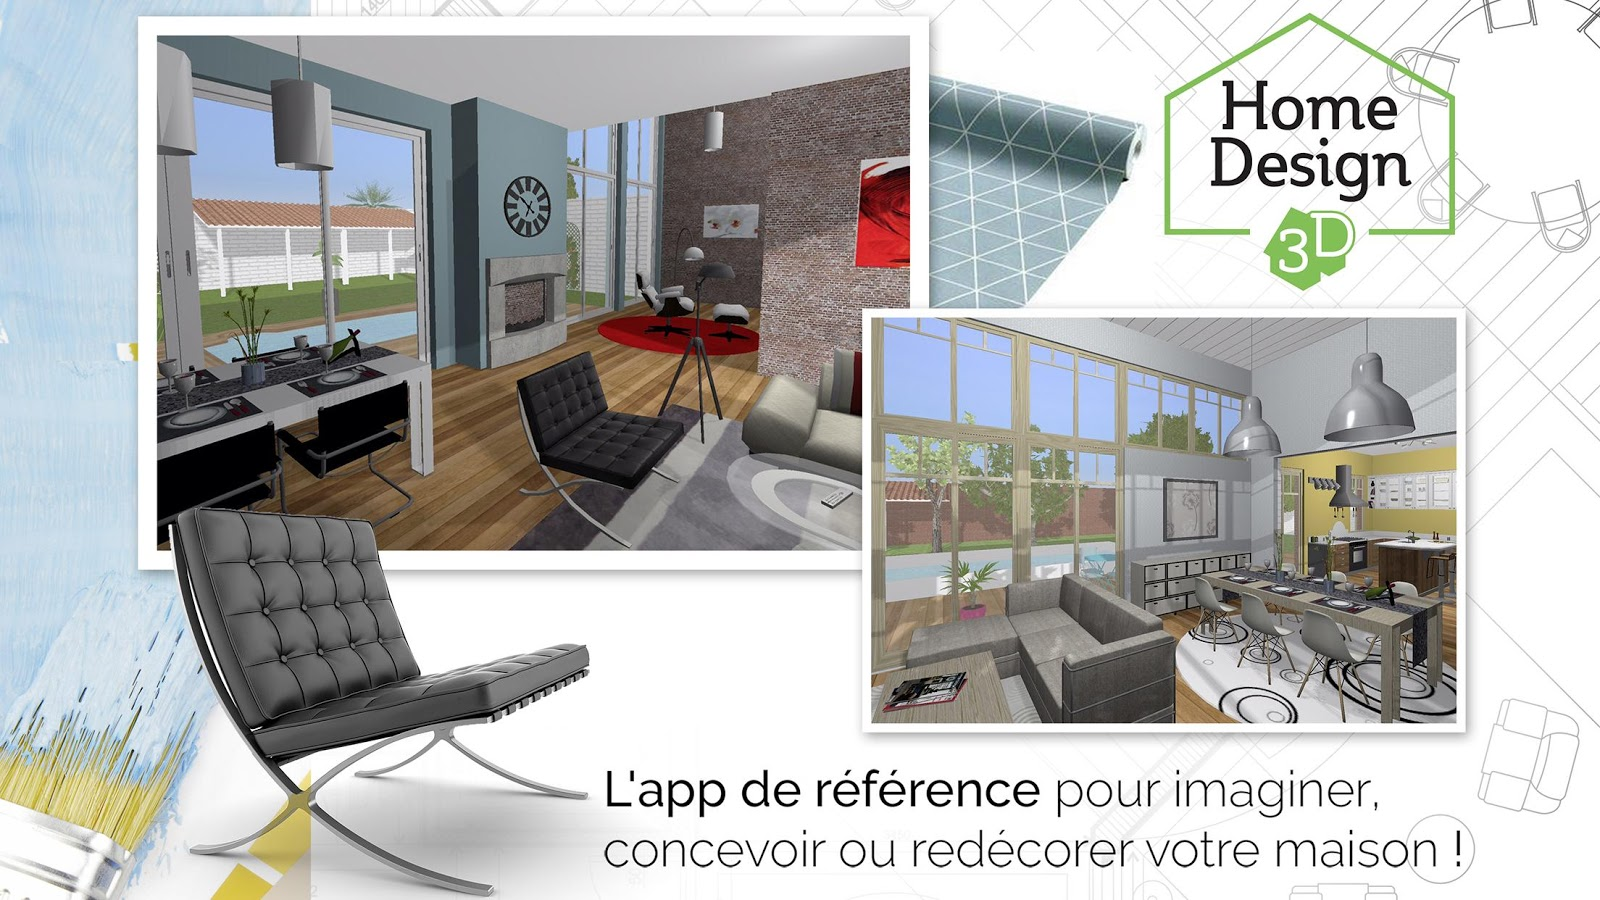 Home design 3d freemium applications android sur Free 3d home design software for pc